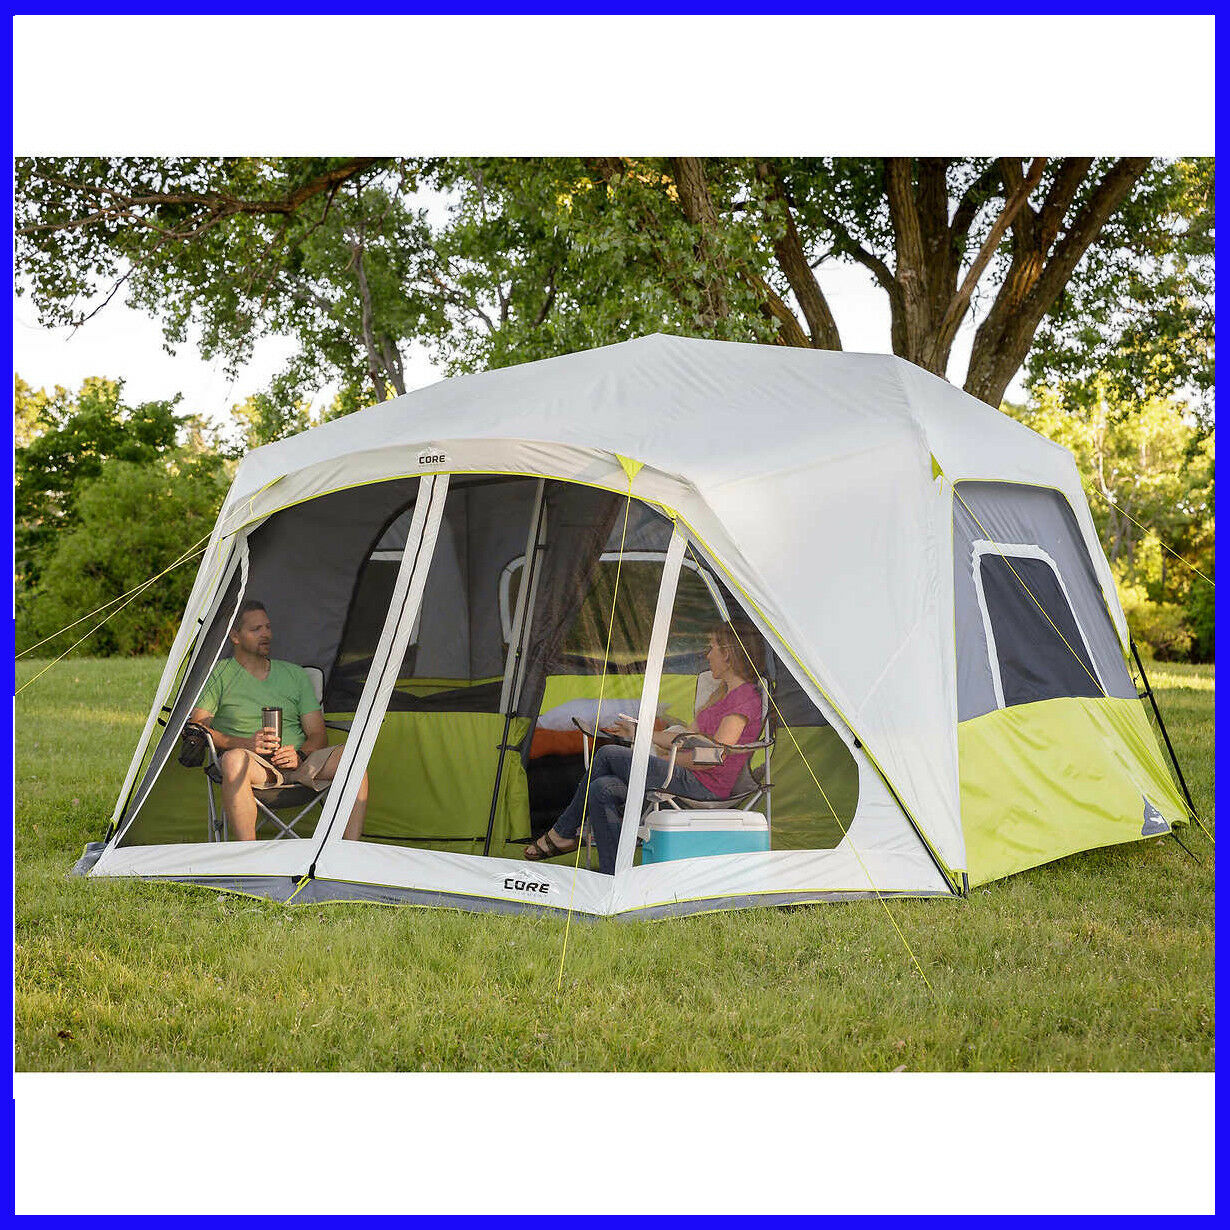 [No Tax] CORE 10-person Instant Cabin Tent  with Screen Room, 2-minute Setup  big sale